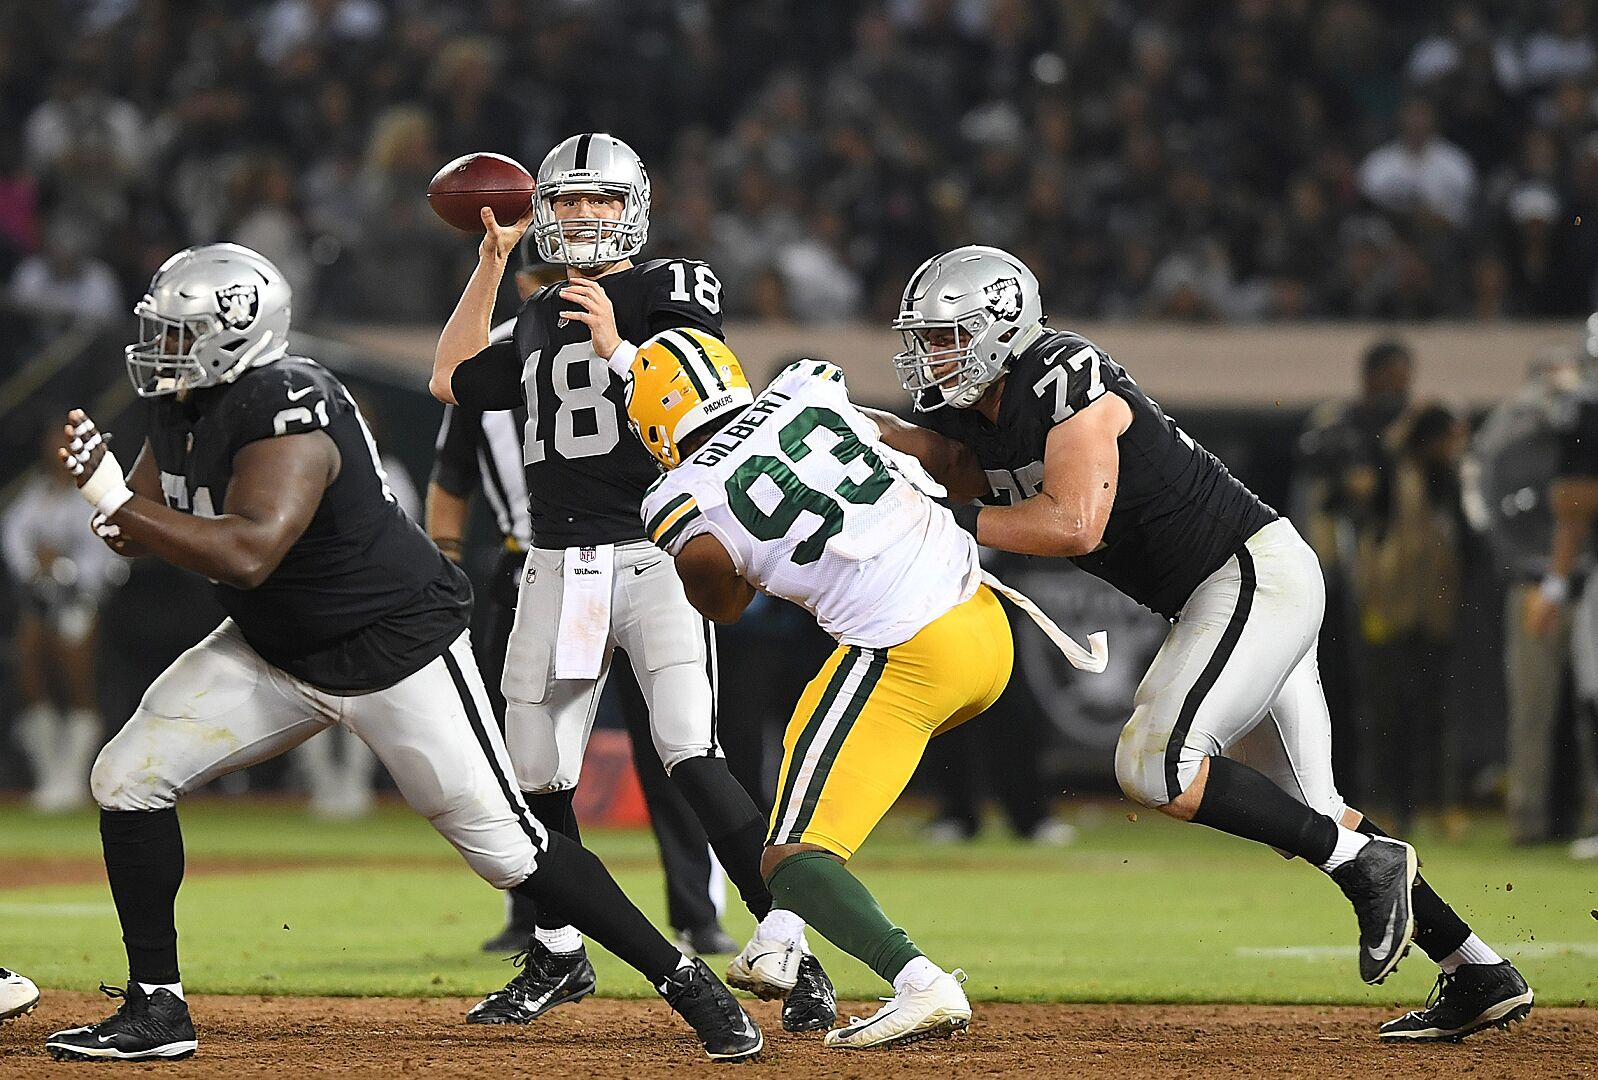 7872b675394 OAKLAND, CA – AUGUST 24: Connor Cook #18 of the Oakland Raiders looks to  pass against the Green Bay Packers during the second quarter of an NFL  preseason ...